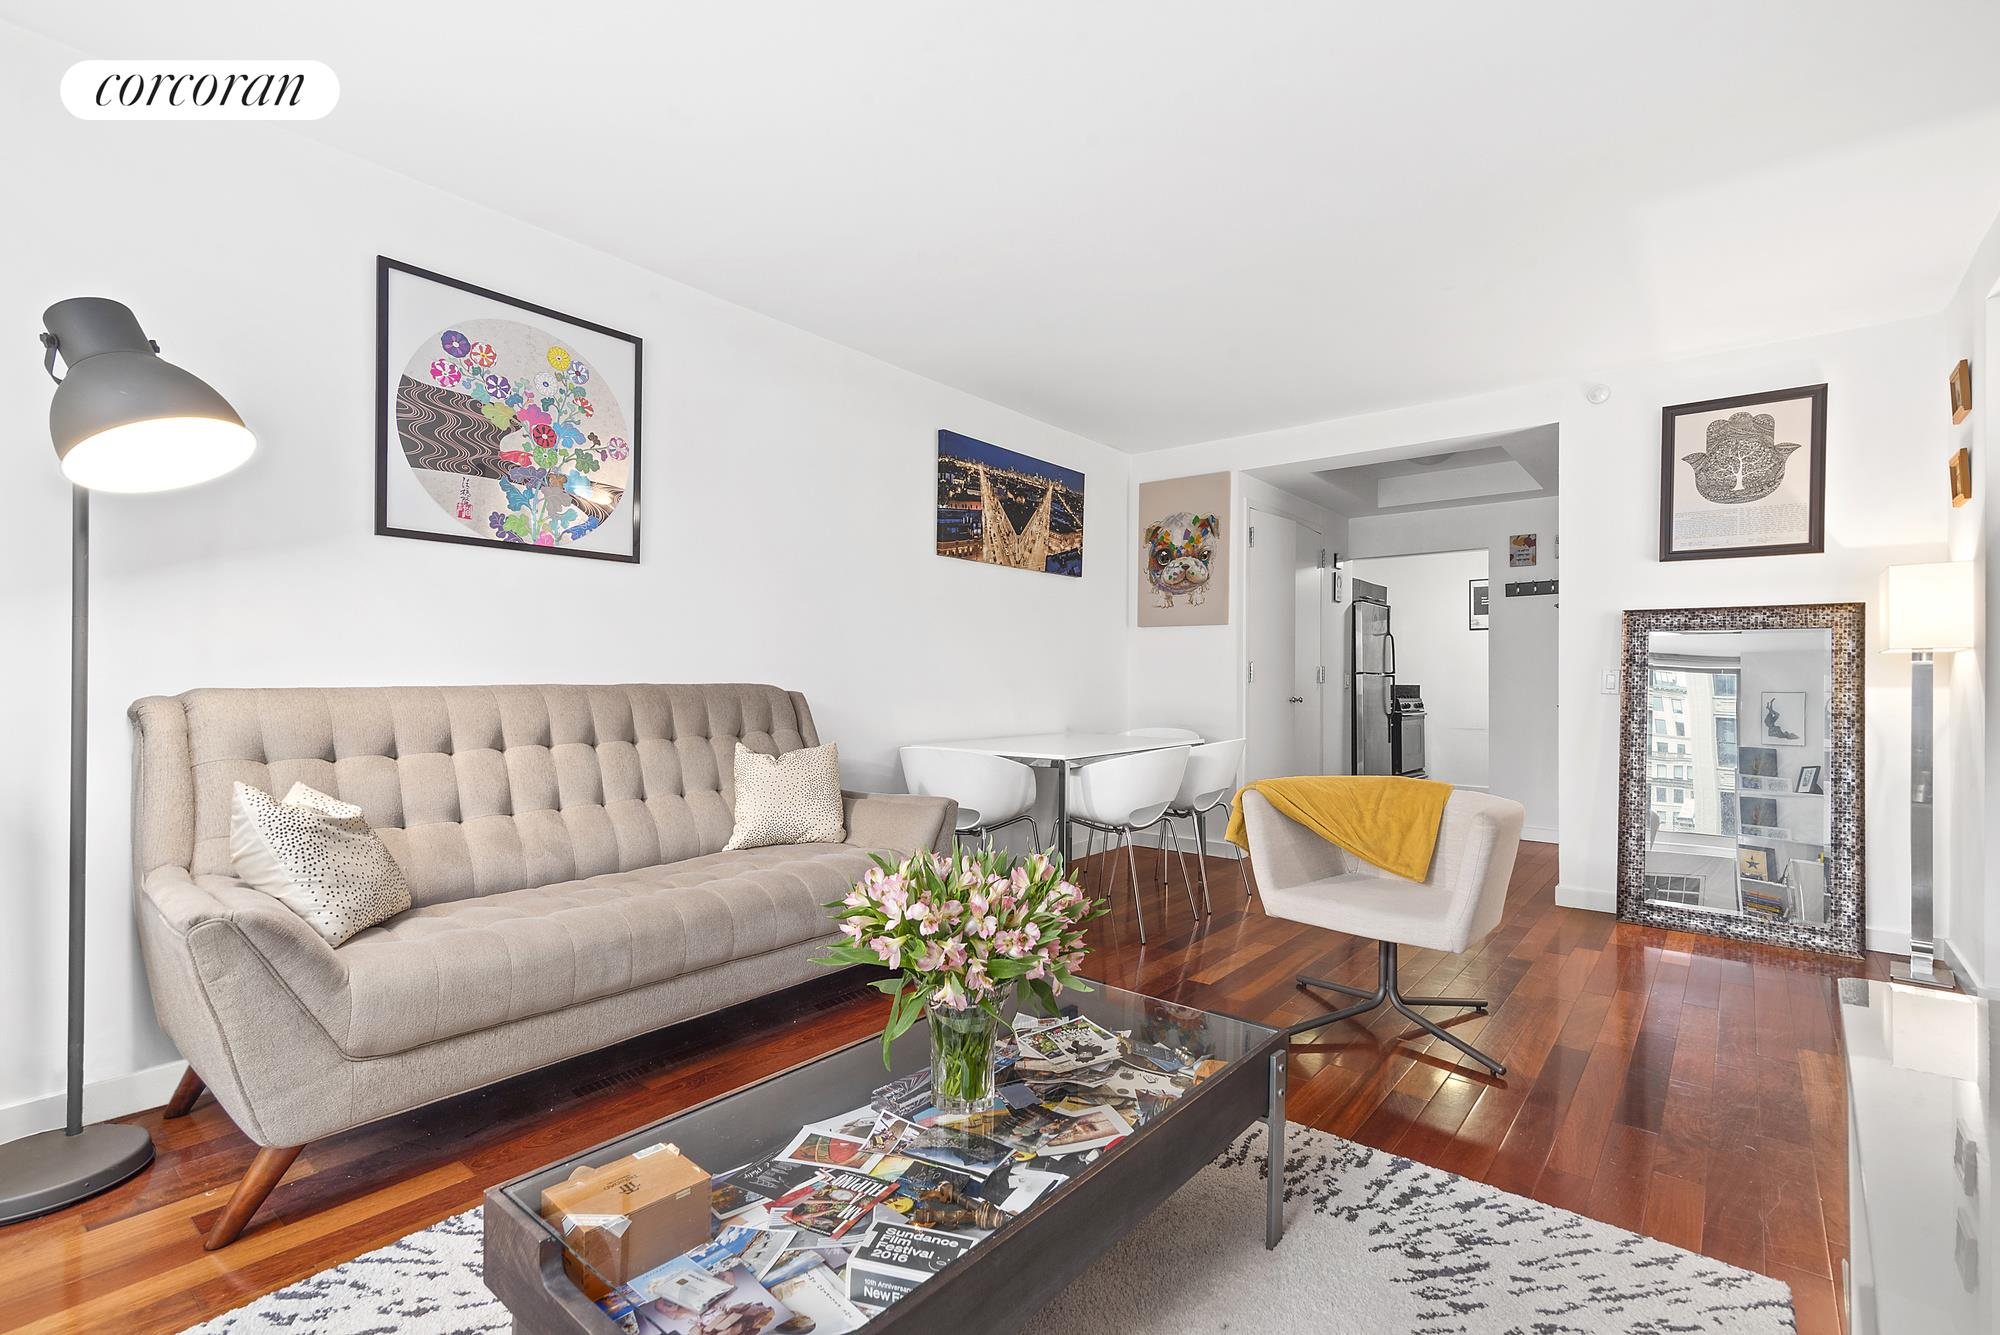 Apartment for sale at 121 East 23rd Street, Apt 7B